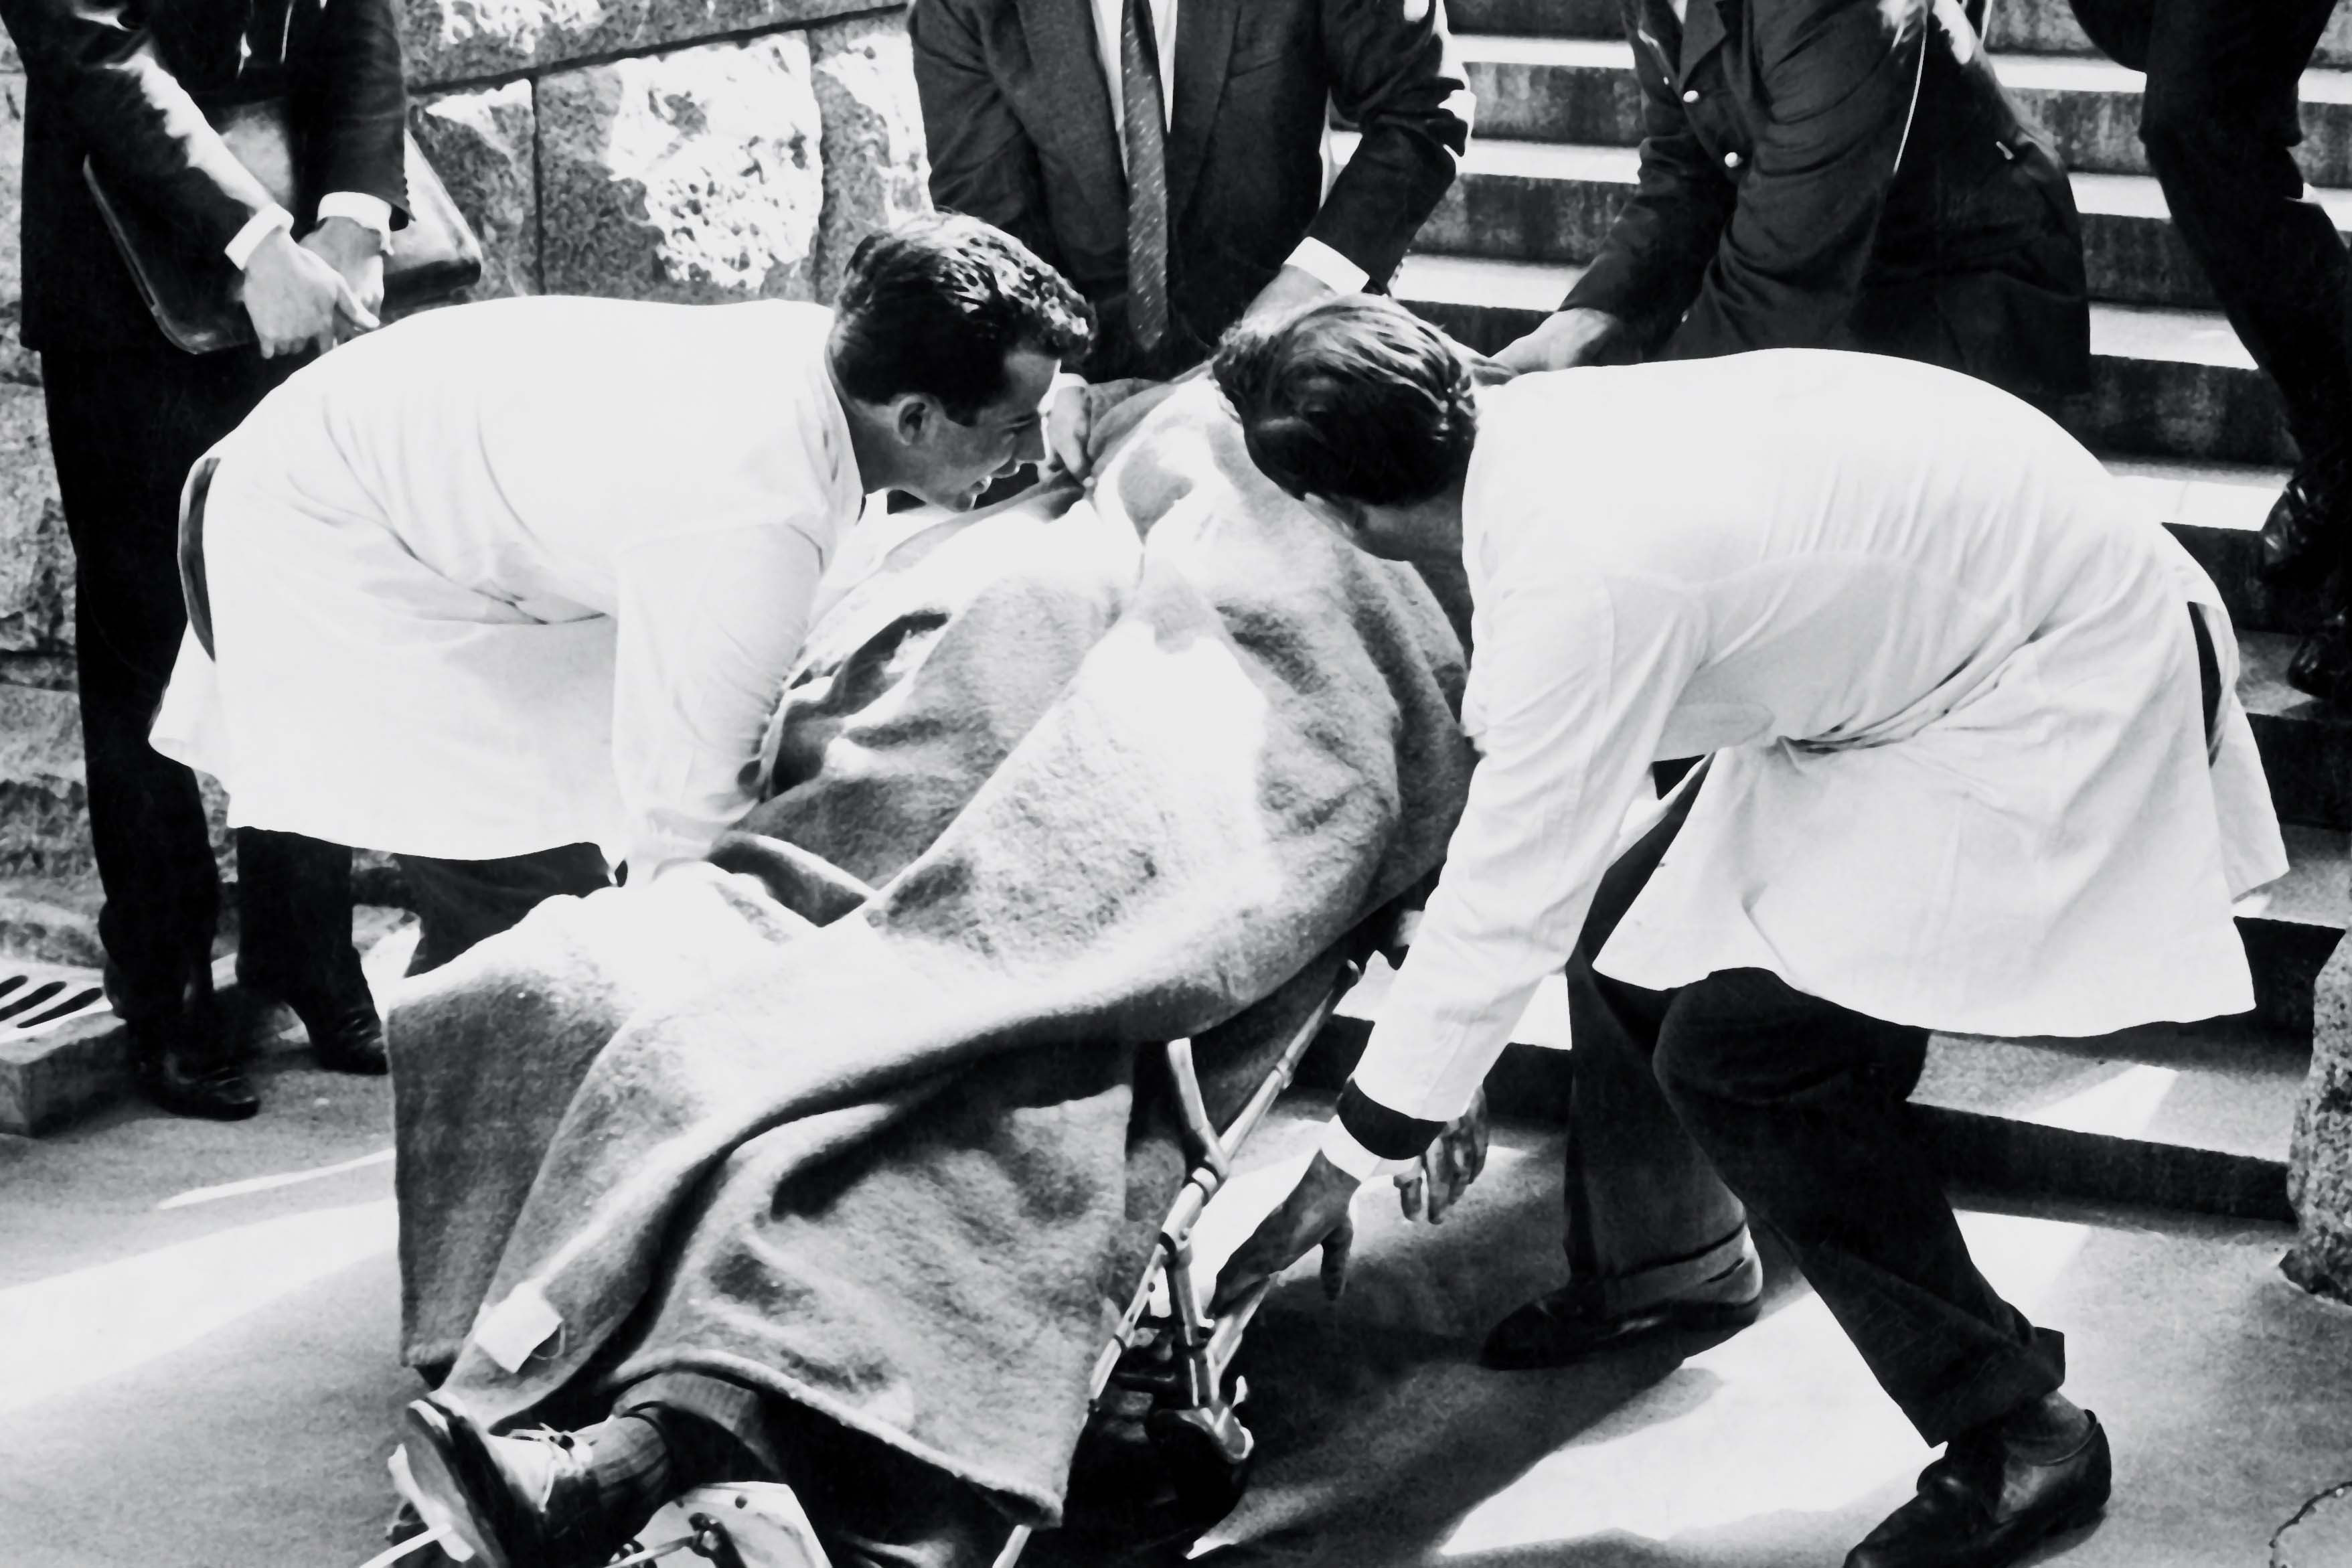 6 September 1966: The body of Hendrik Verwoerd, leader of the National Party and South African prime minister from 1958 to 1966, is carried out of Parliament after he was assassinated by Dimitri Tsafendas. (Photograph by Die Burger/Media24)